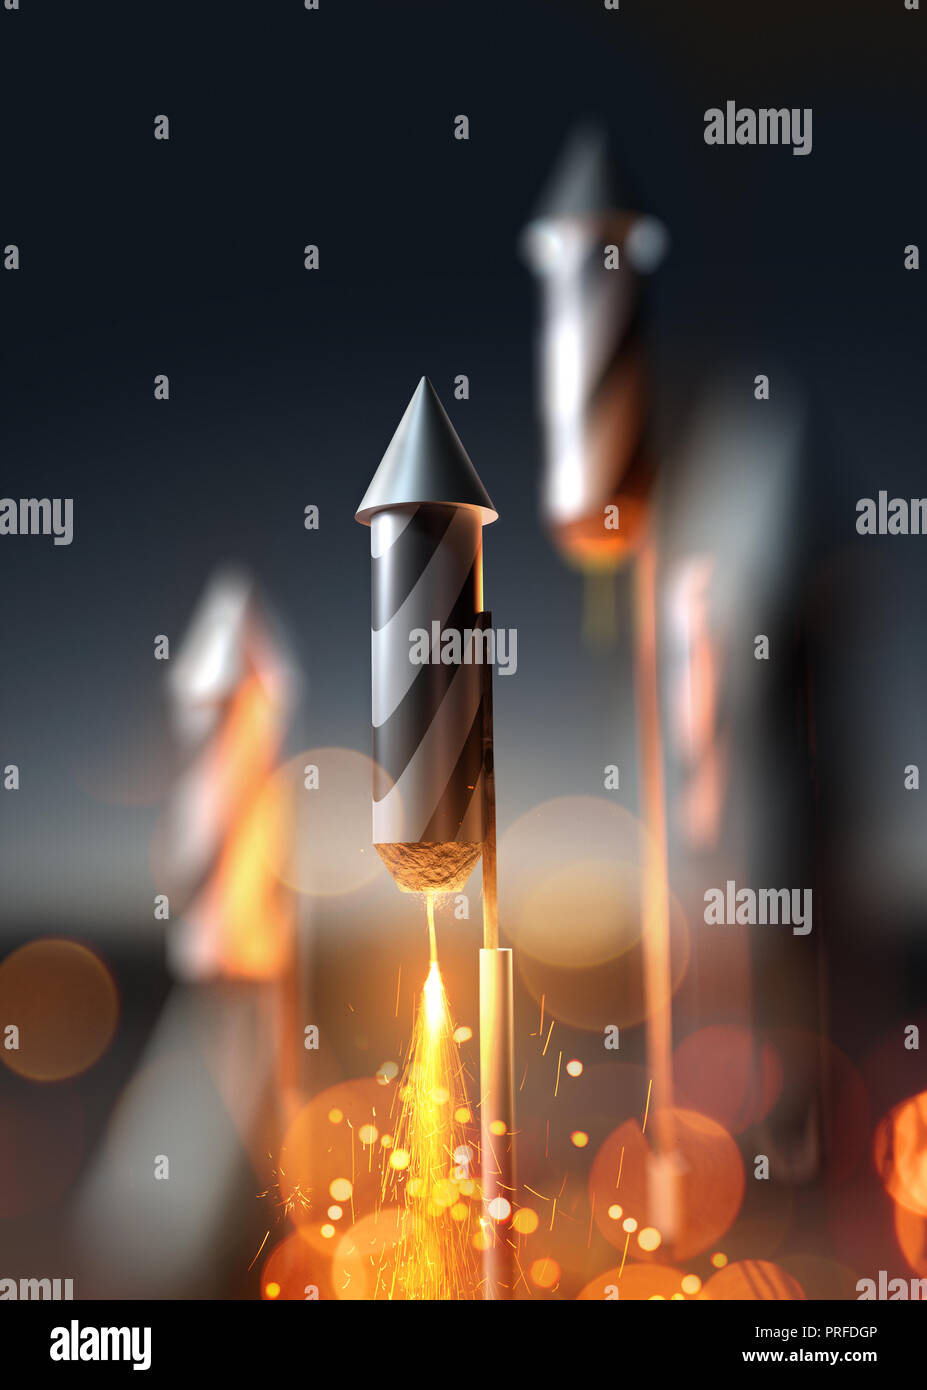 A close up image of a firework rocket about to launch into the night sky. 3D illustration. Stock Photo